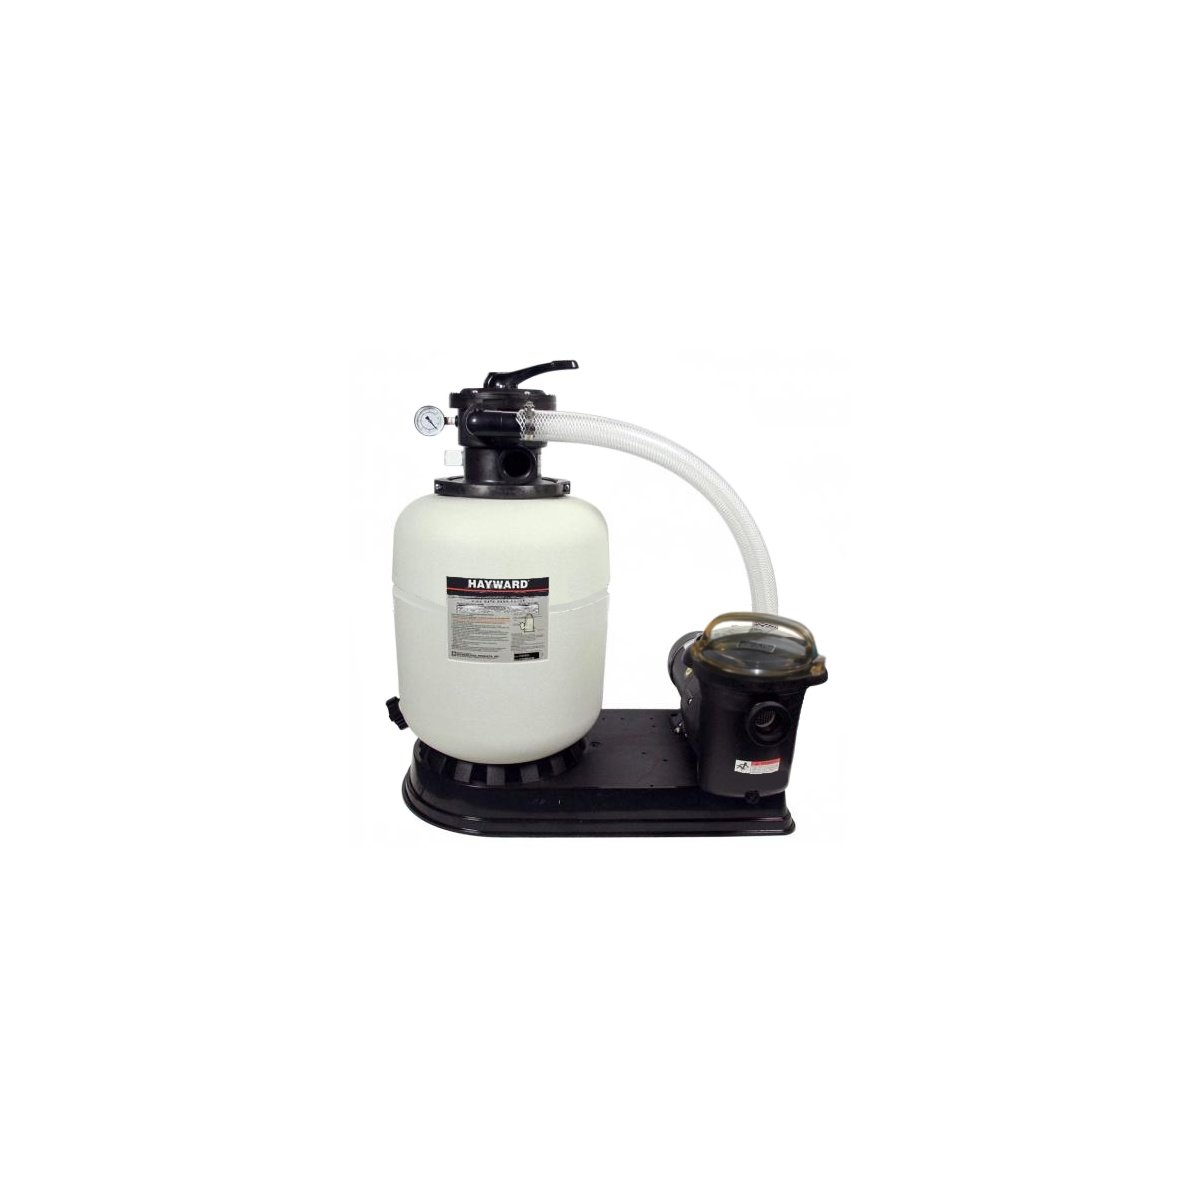 Amazon.com : Hayward S166T1580S ProSeries 16-Inch 1 HP Sand Filter System :  Swimming Pool Filters : Garden & Outdoor